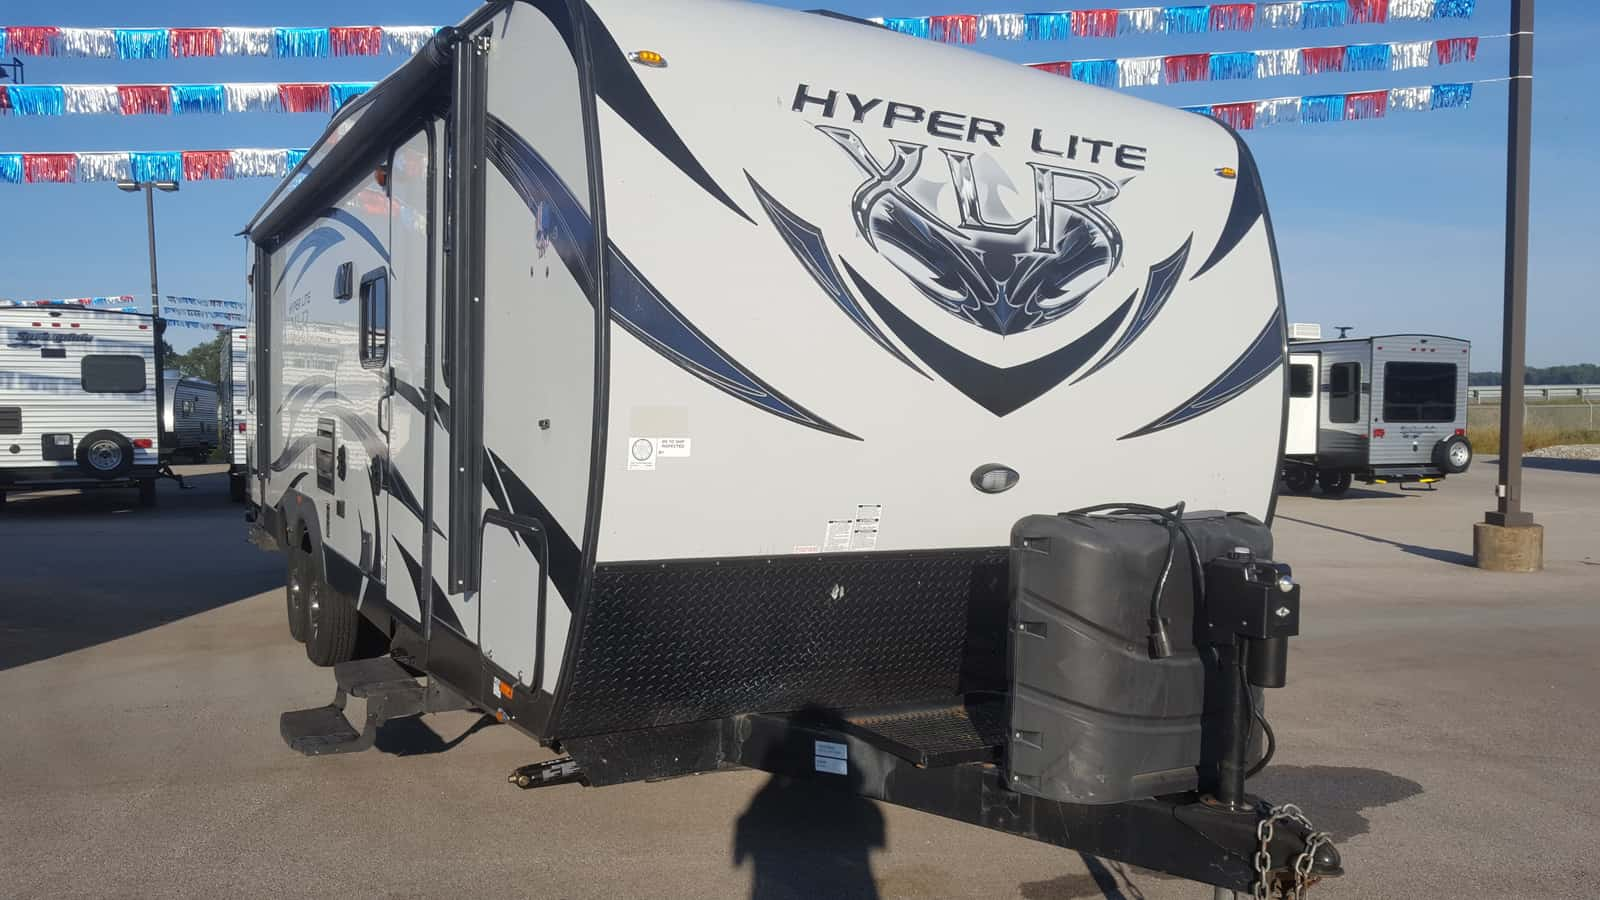 USED 2015 Forest River XLR HYPERLITE 27HFS - American RV